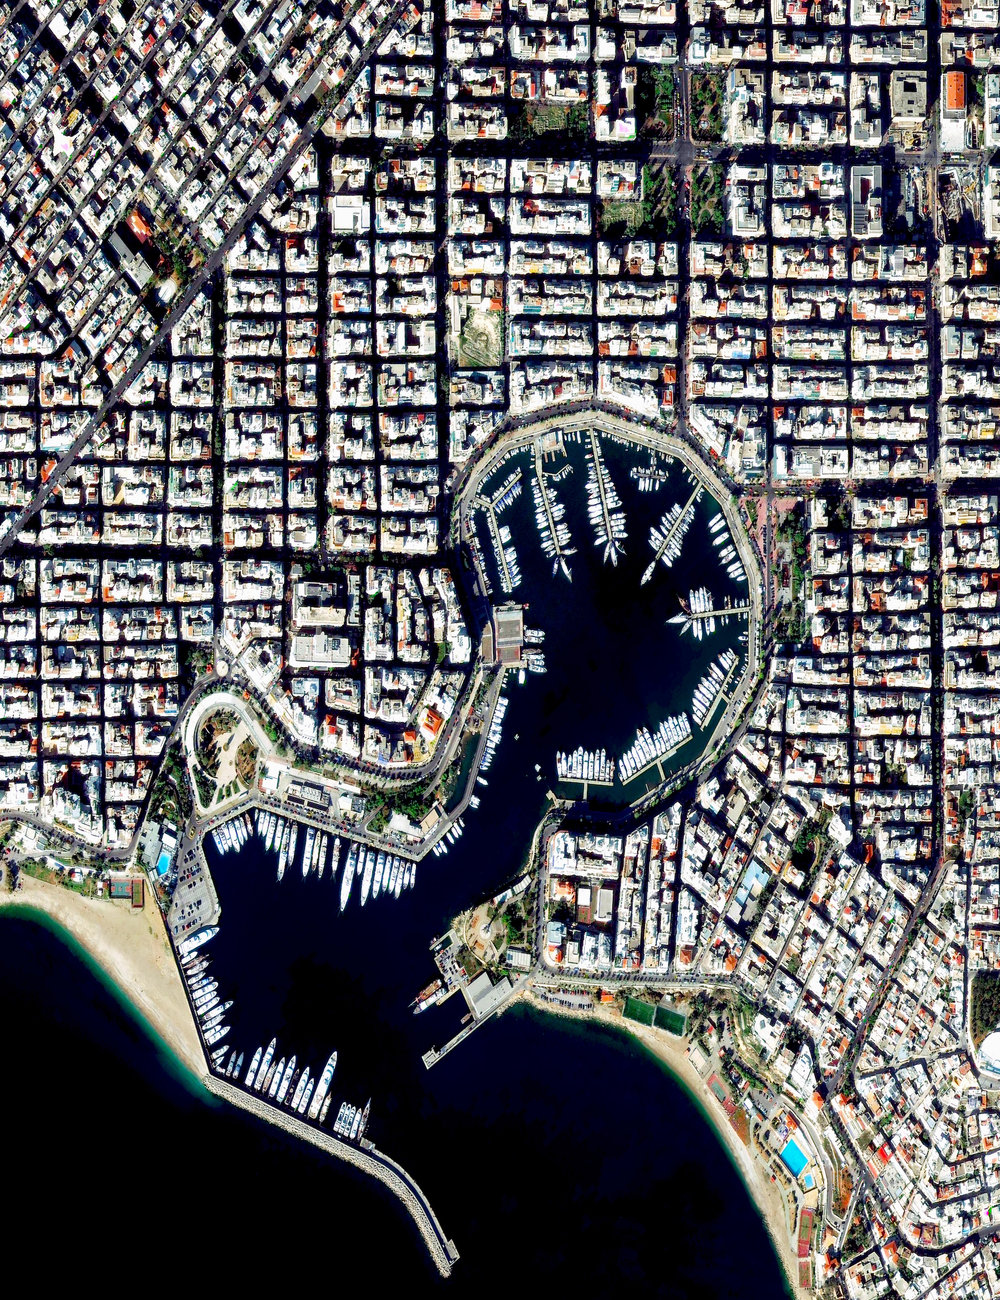 1/17/2017 Piraeus Marina Piraeus, Greece 37.9377373, 23.645820   The Piraeus Marina is located on the Bay of Zea and is surrounding by gridded streets in the Greek city of Piraeus. The city was developed in the early 5th century BC, when it was selected to serve as the port destination of classical Athens. Now, the city contains the second largest passenger port in the world, which services about 20 million passengers every year.